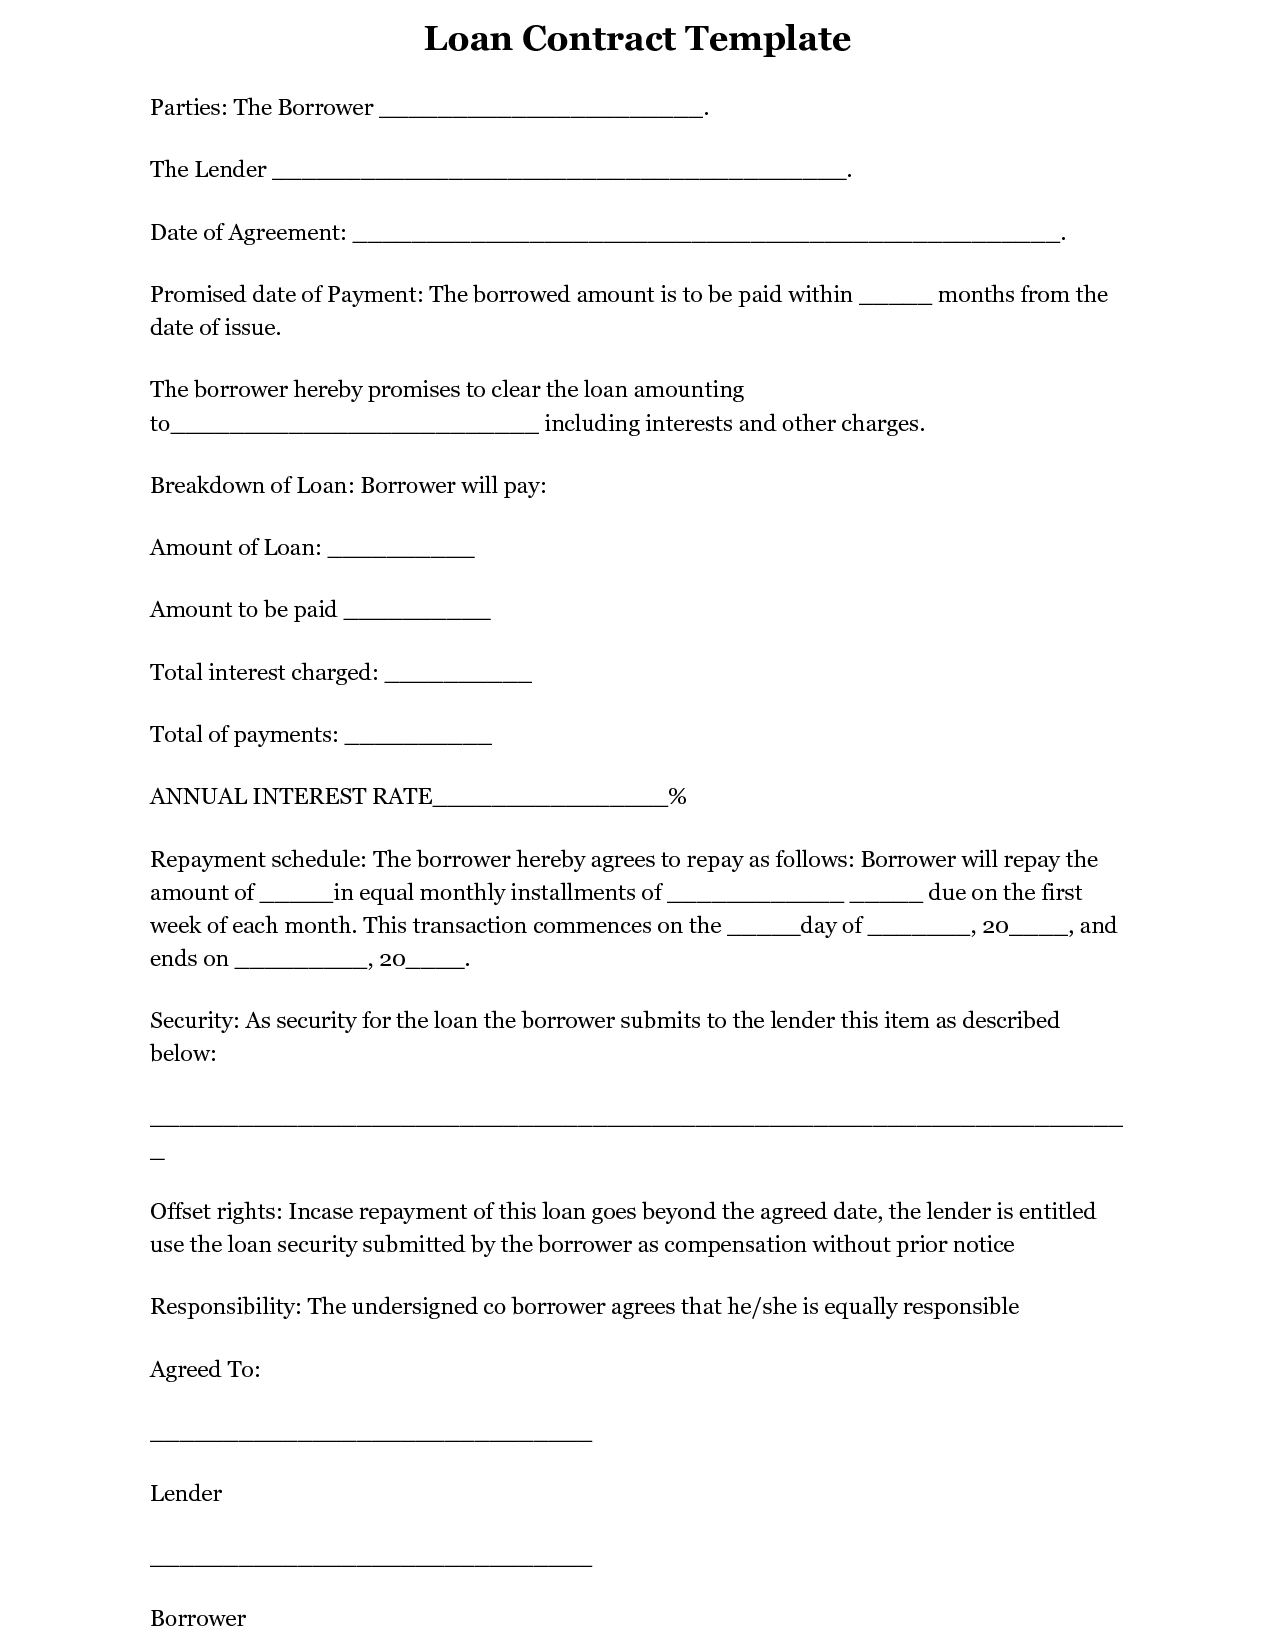 simple interest loan agreement template – Private Loan Agreement Template